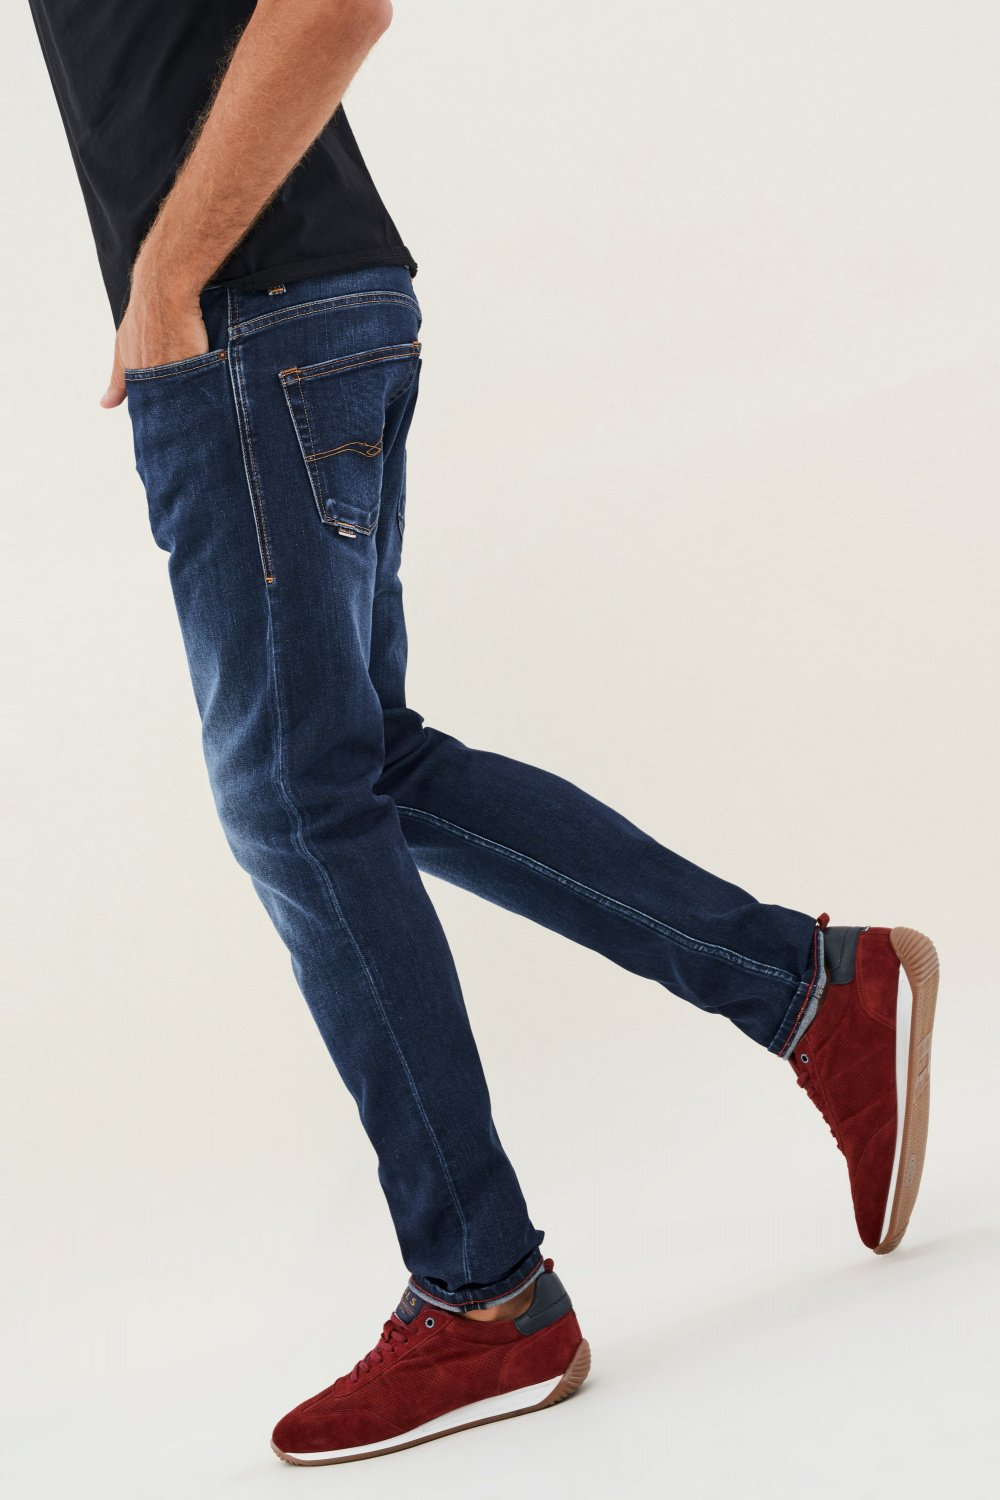 Jeans Slender slim carrot en warm denim greencast - Salsa